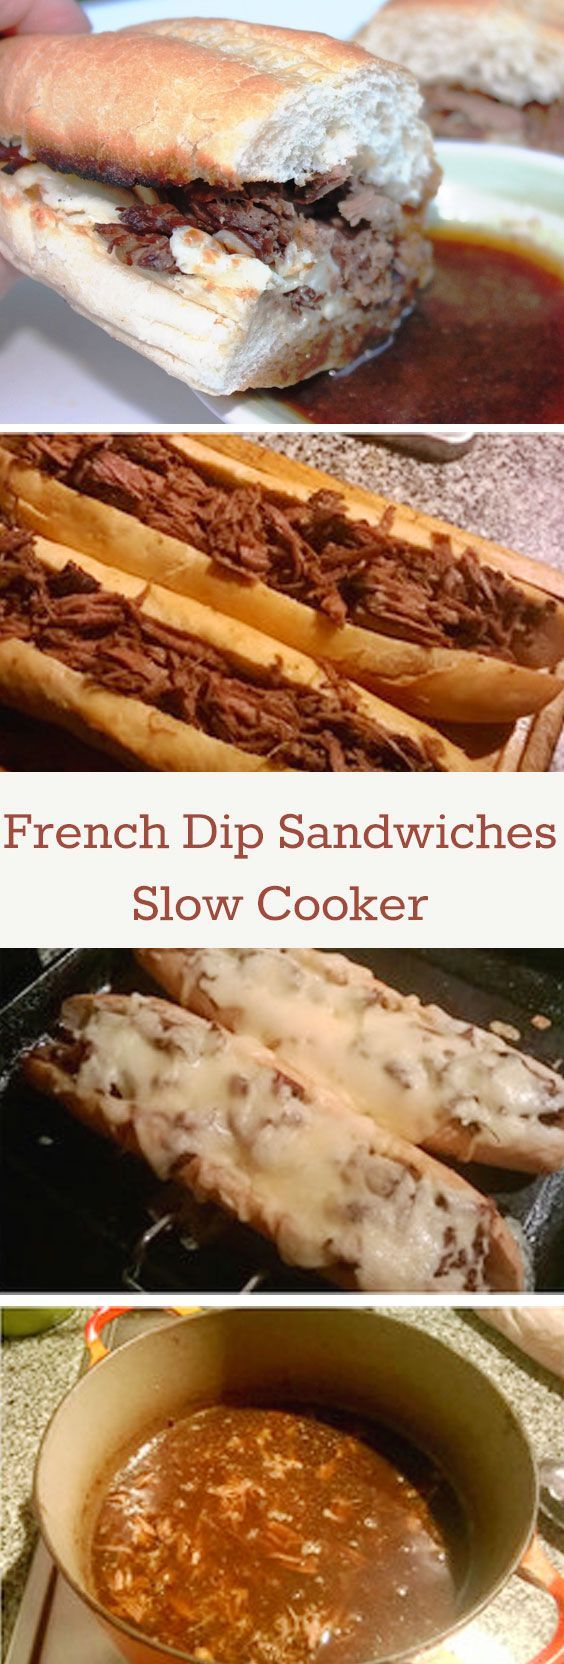 French Dip sandwiches that come straight out of the slow cooker. Yum! For more info, please visit http://www.recipezazz.com/